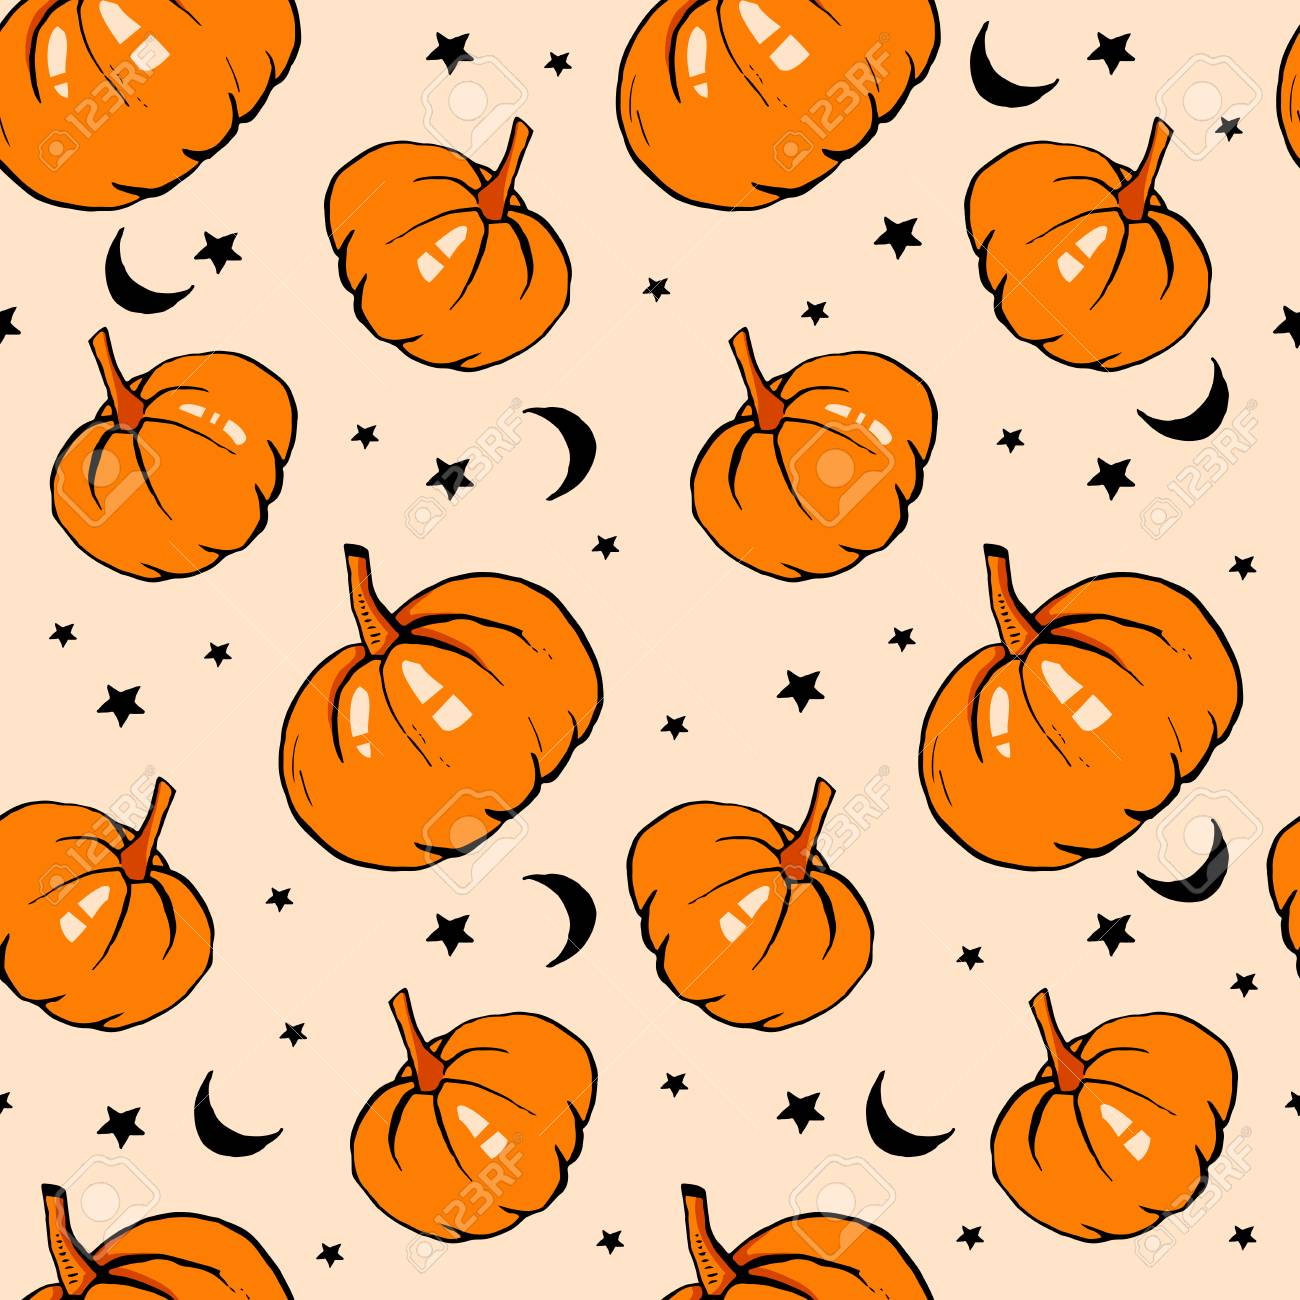 Halloween Seamless Pattern With Pumpkin Ready For Print In Fabric Royalty Free Cliparts Vectors And Stock Illustration Image 112486943